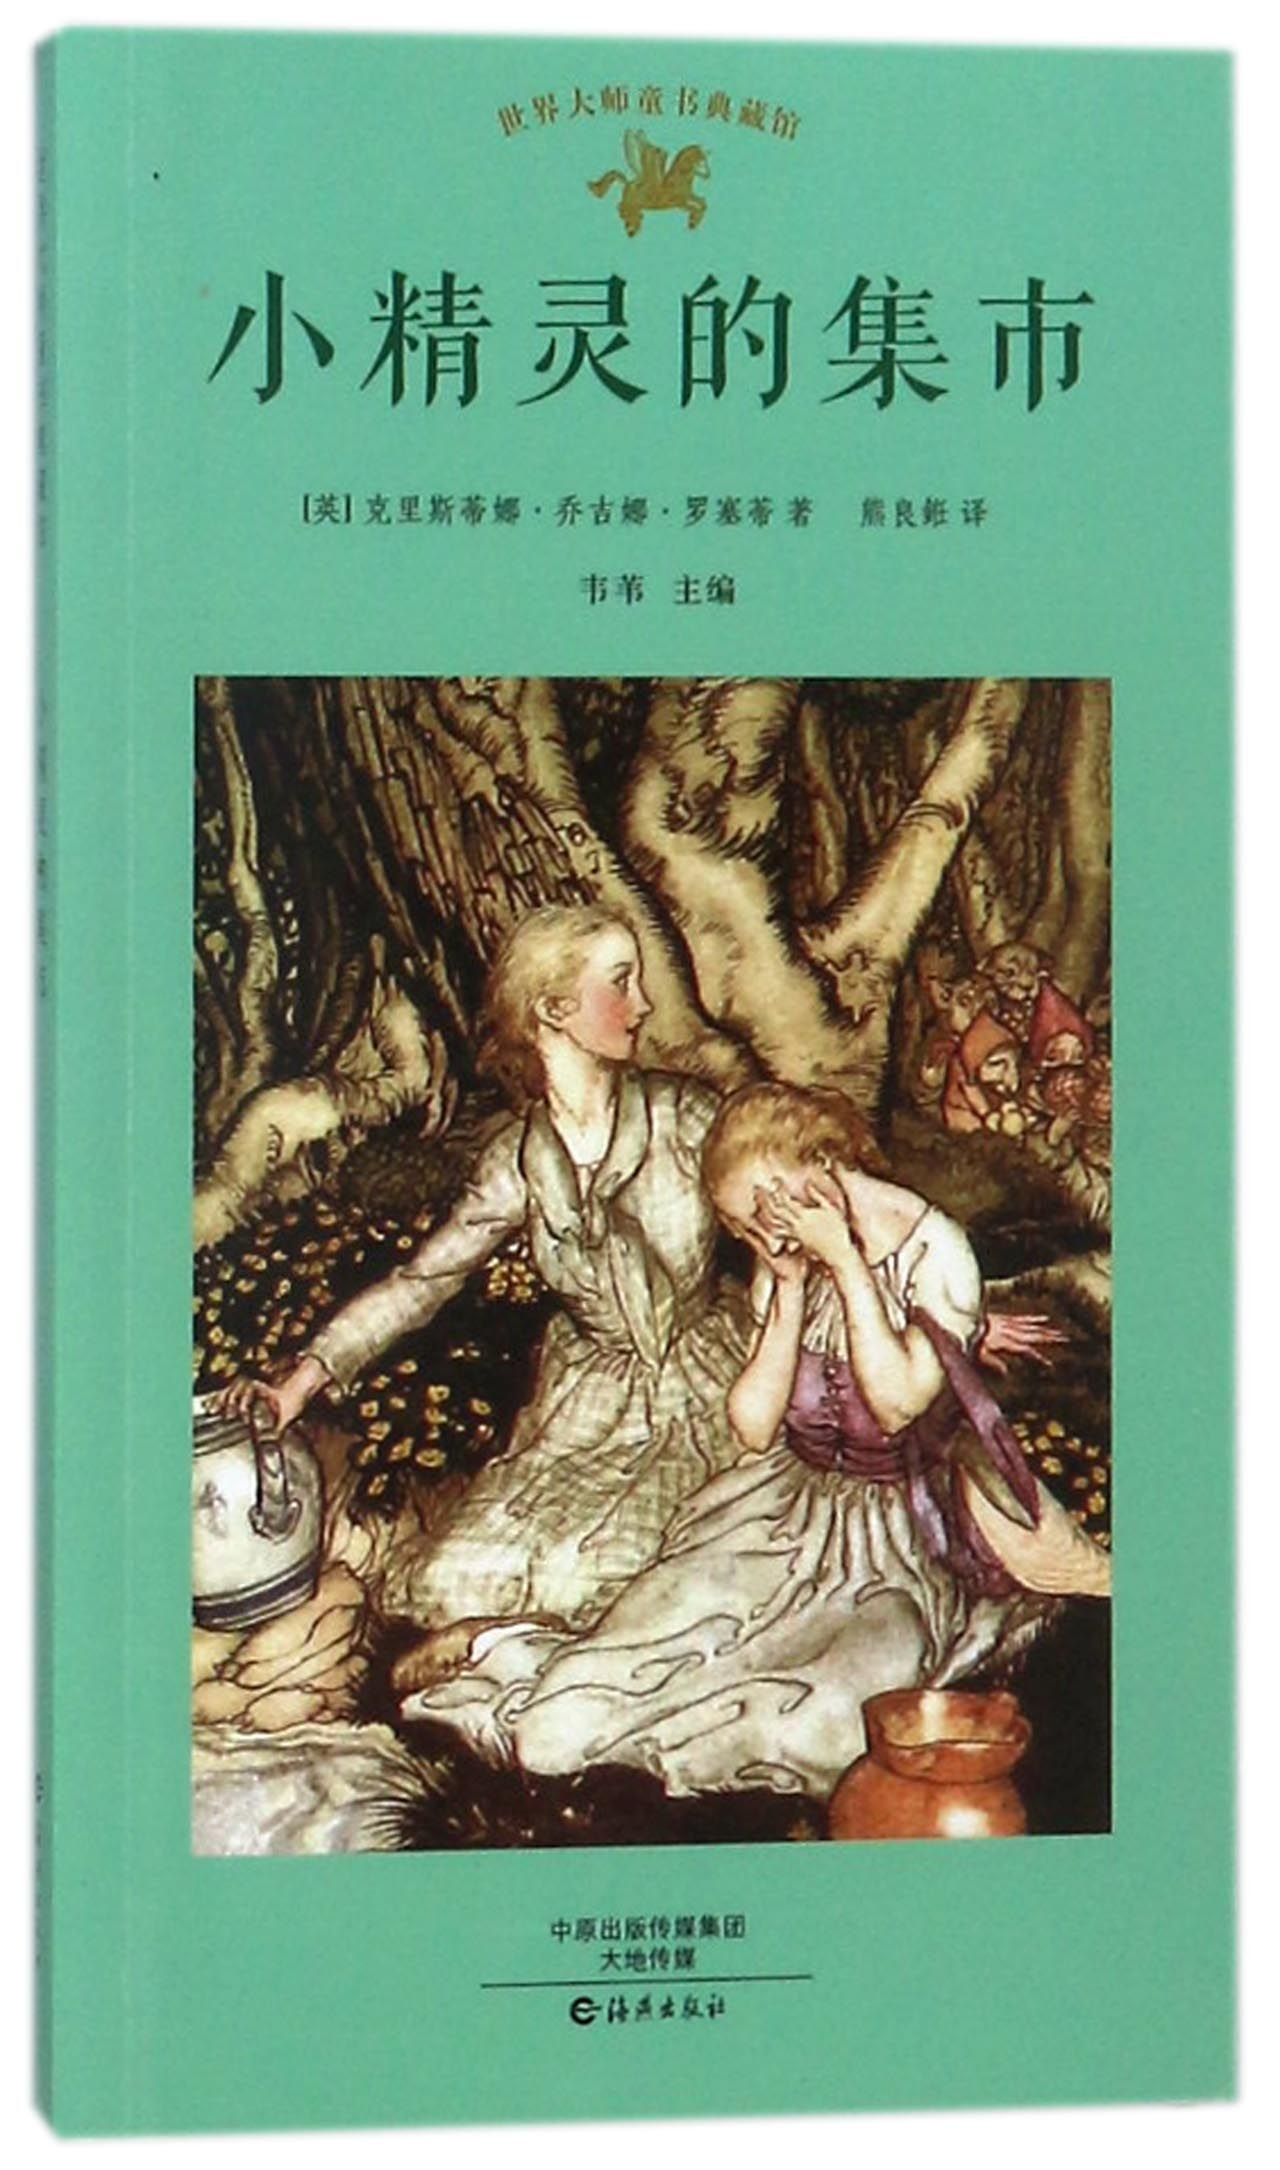 Goblin Market/Collection of Children's Books by World Masters (Chinese Edition) pdf